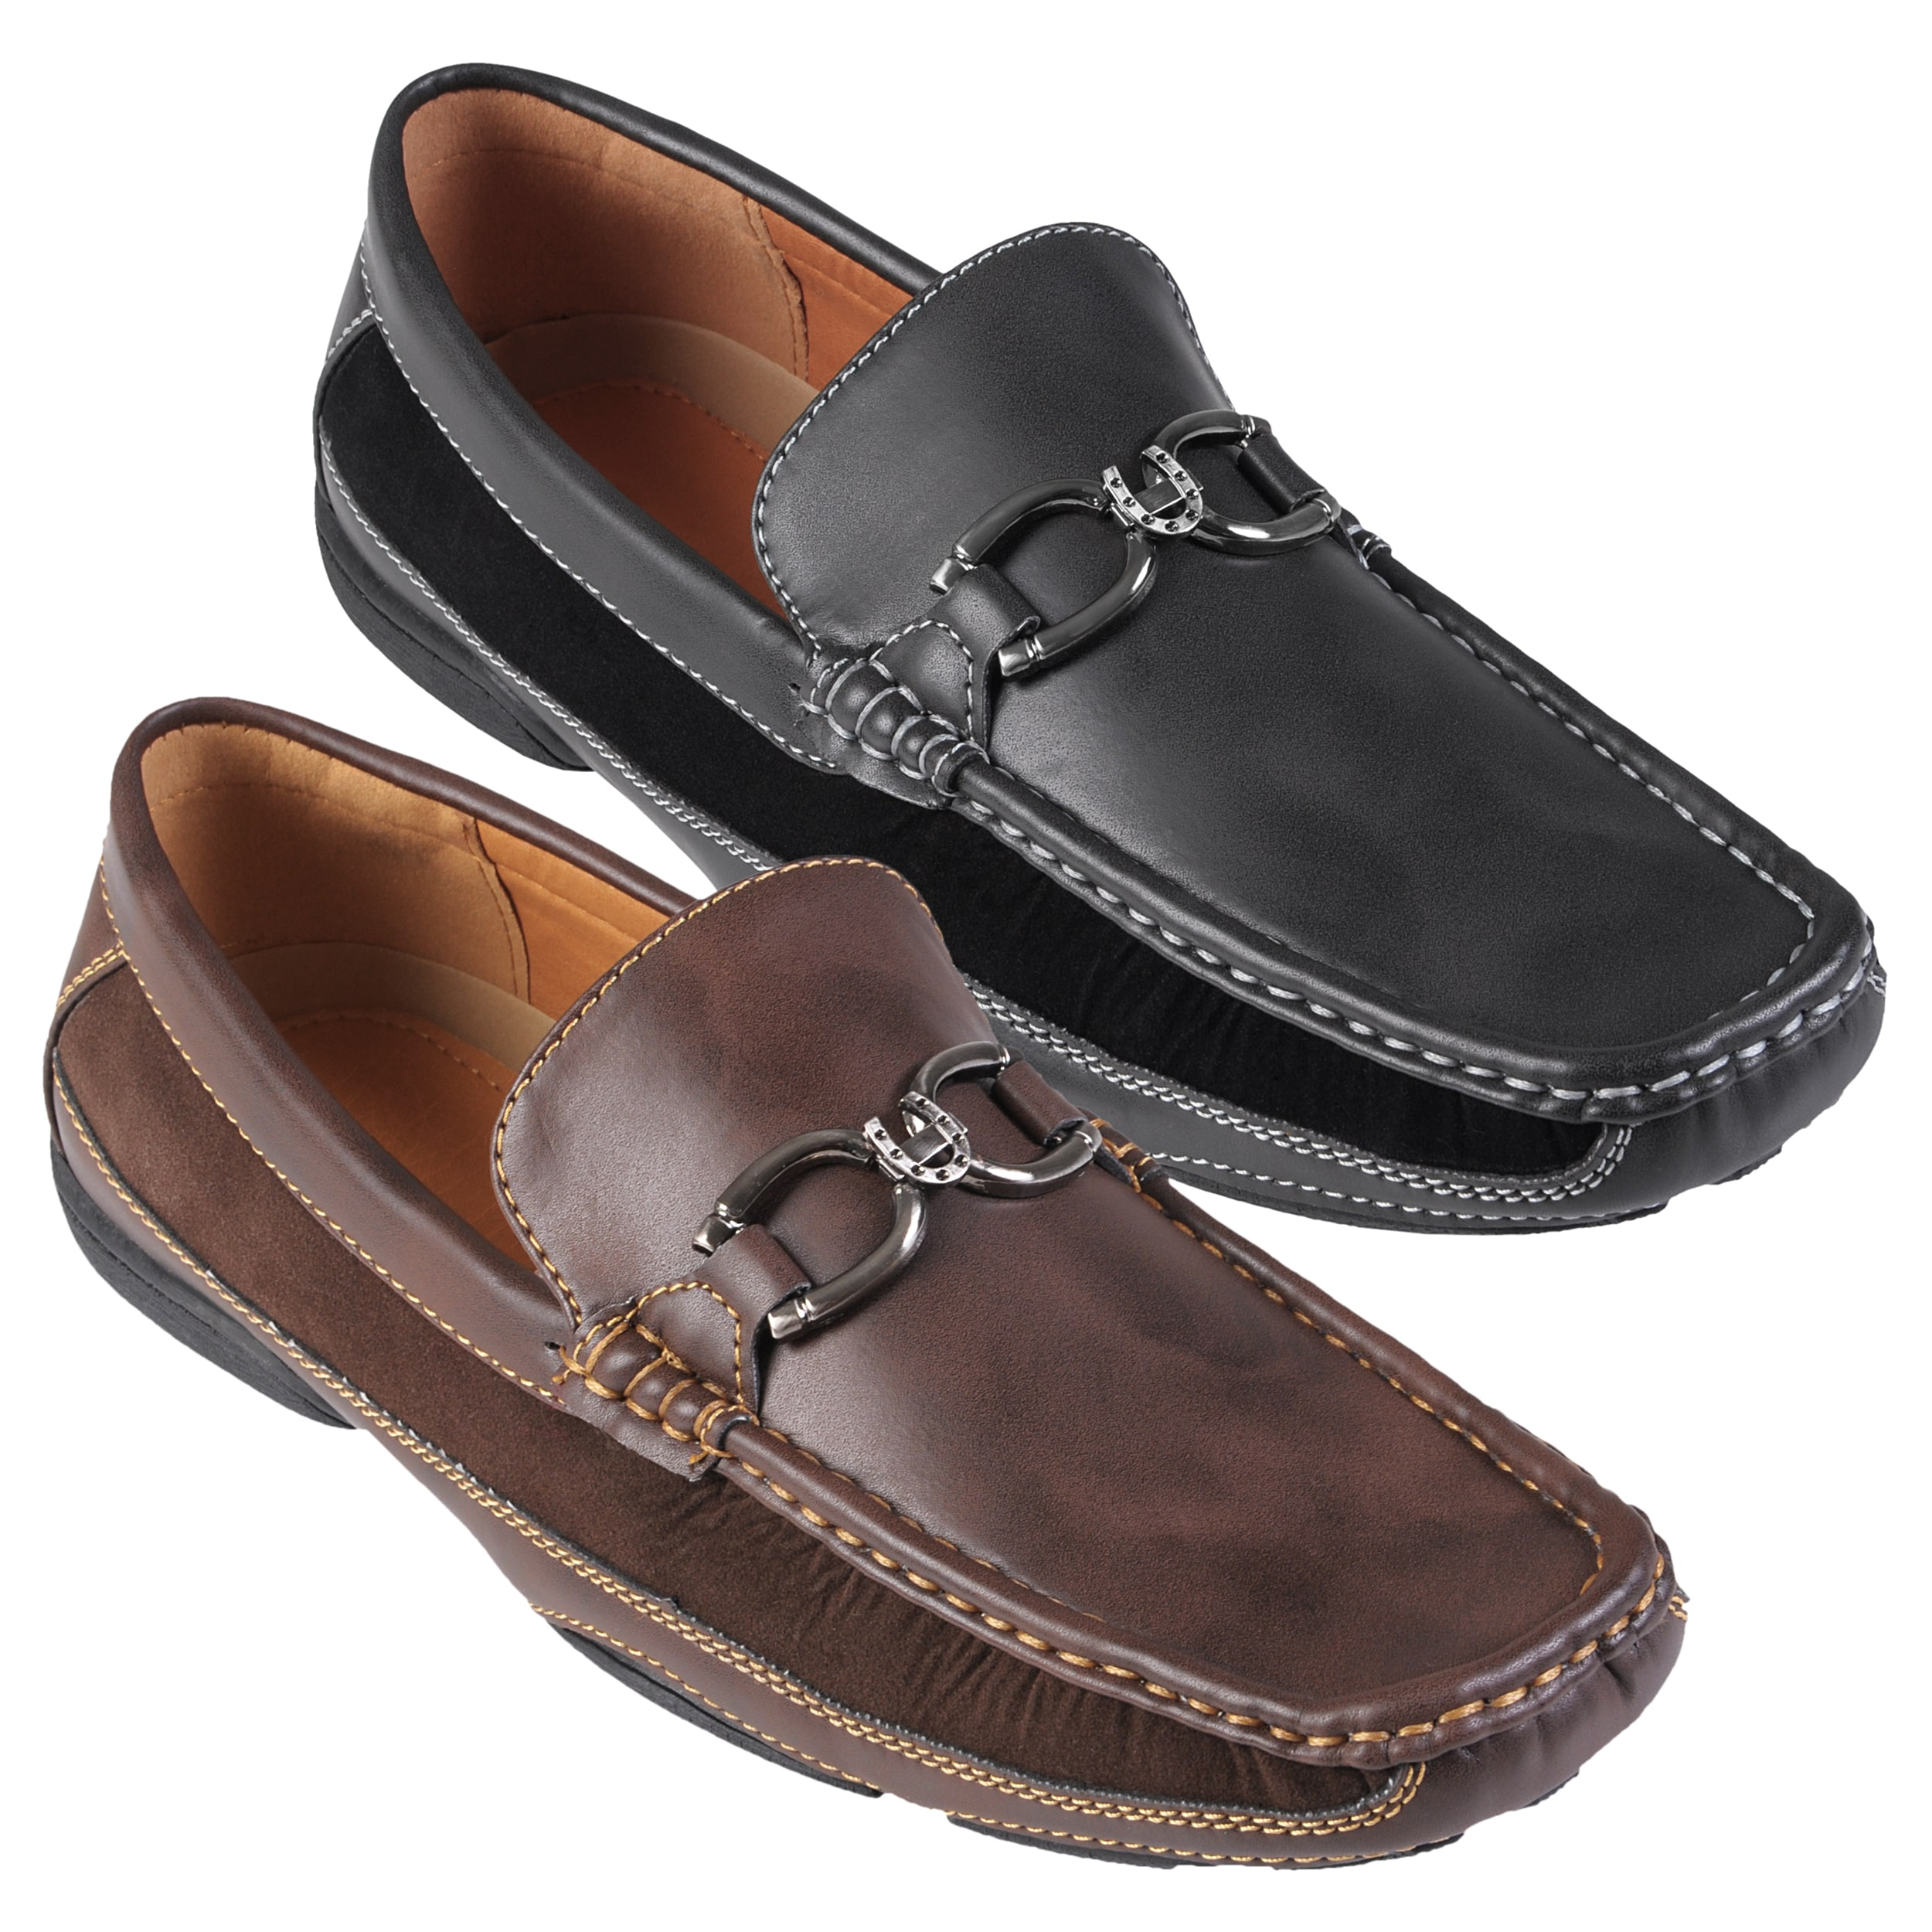 Boston Traveler Men's Topstitched Horseshoe Detail Slip-on Loafer